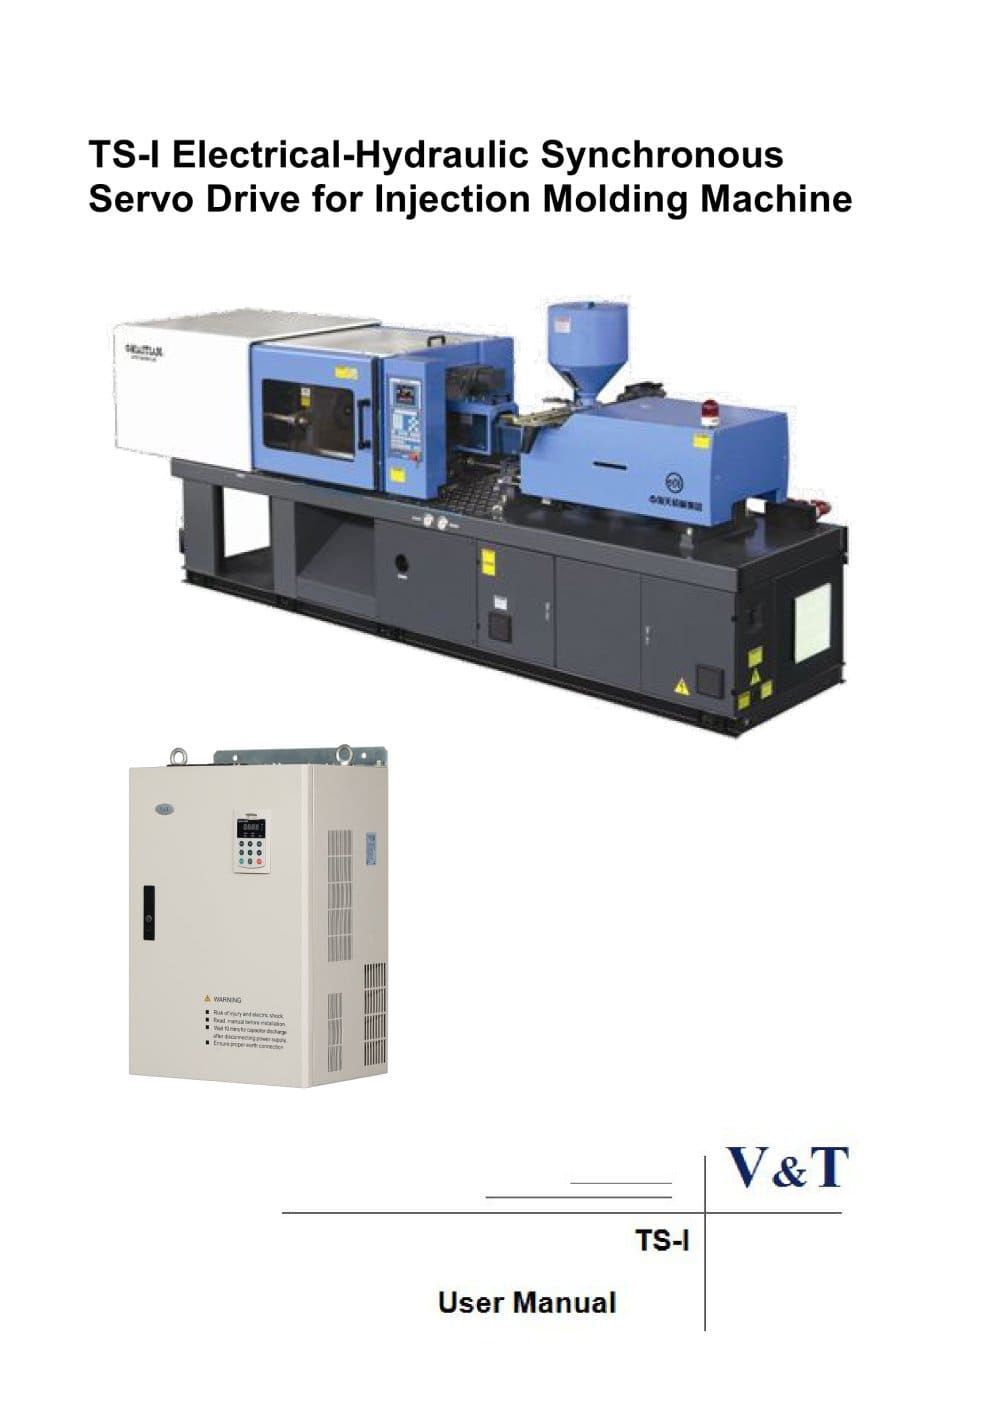 vtdrive ts i electrical hydraulic synchronous servo drive injection molding machine manual 616389_1b vtdrive ts i electrical hydraulic synchronous servo drive for